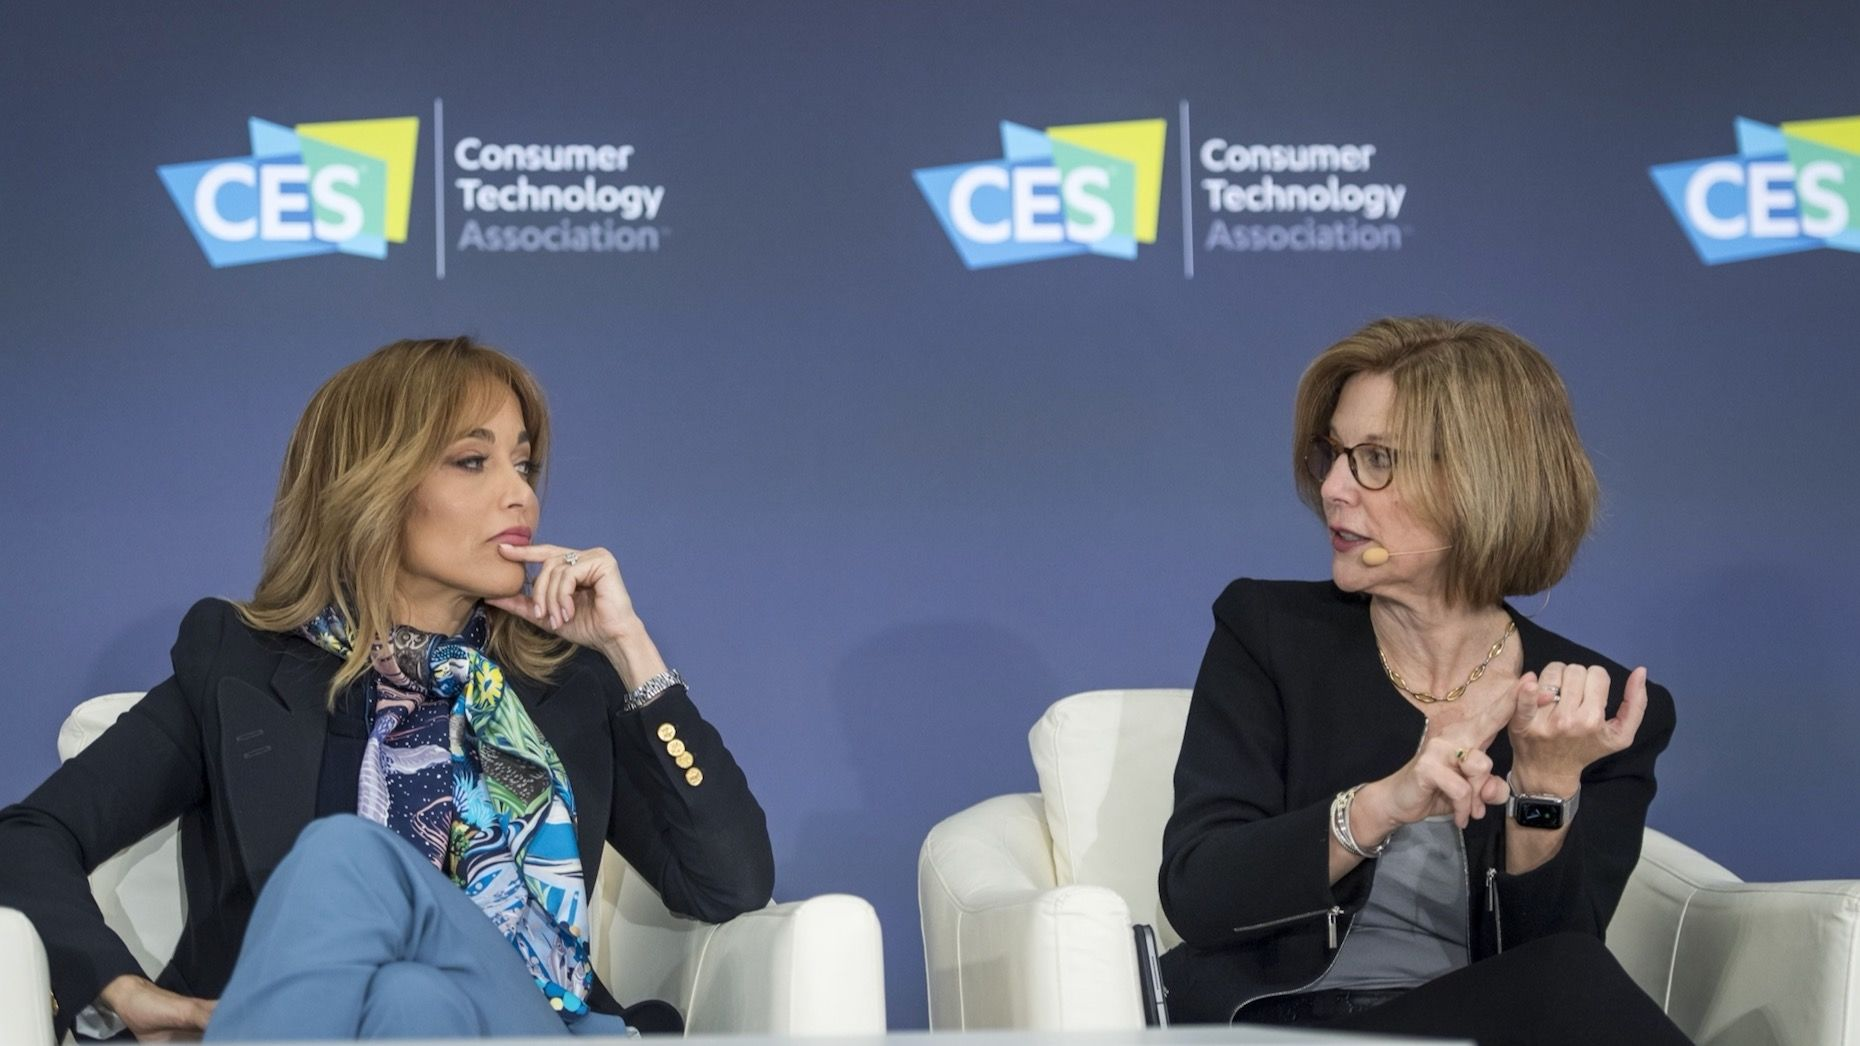 Erin Egan, chief privacy officer at Facebook, left, listens as Jane Horvath, senior director of global privacy at Apple, speaks during a panel discussion at CES. Photo by Bloomberg.